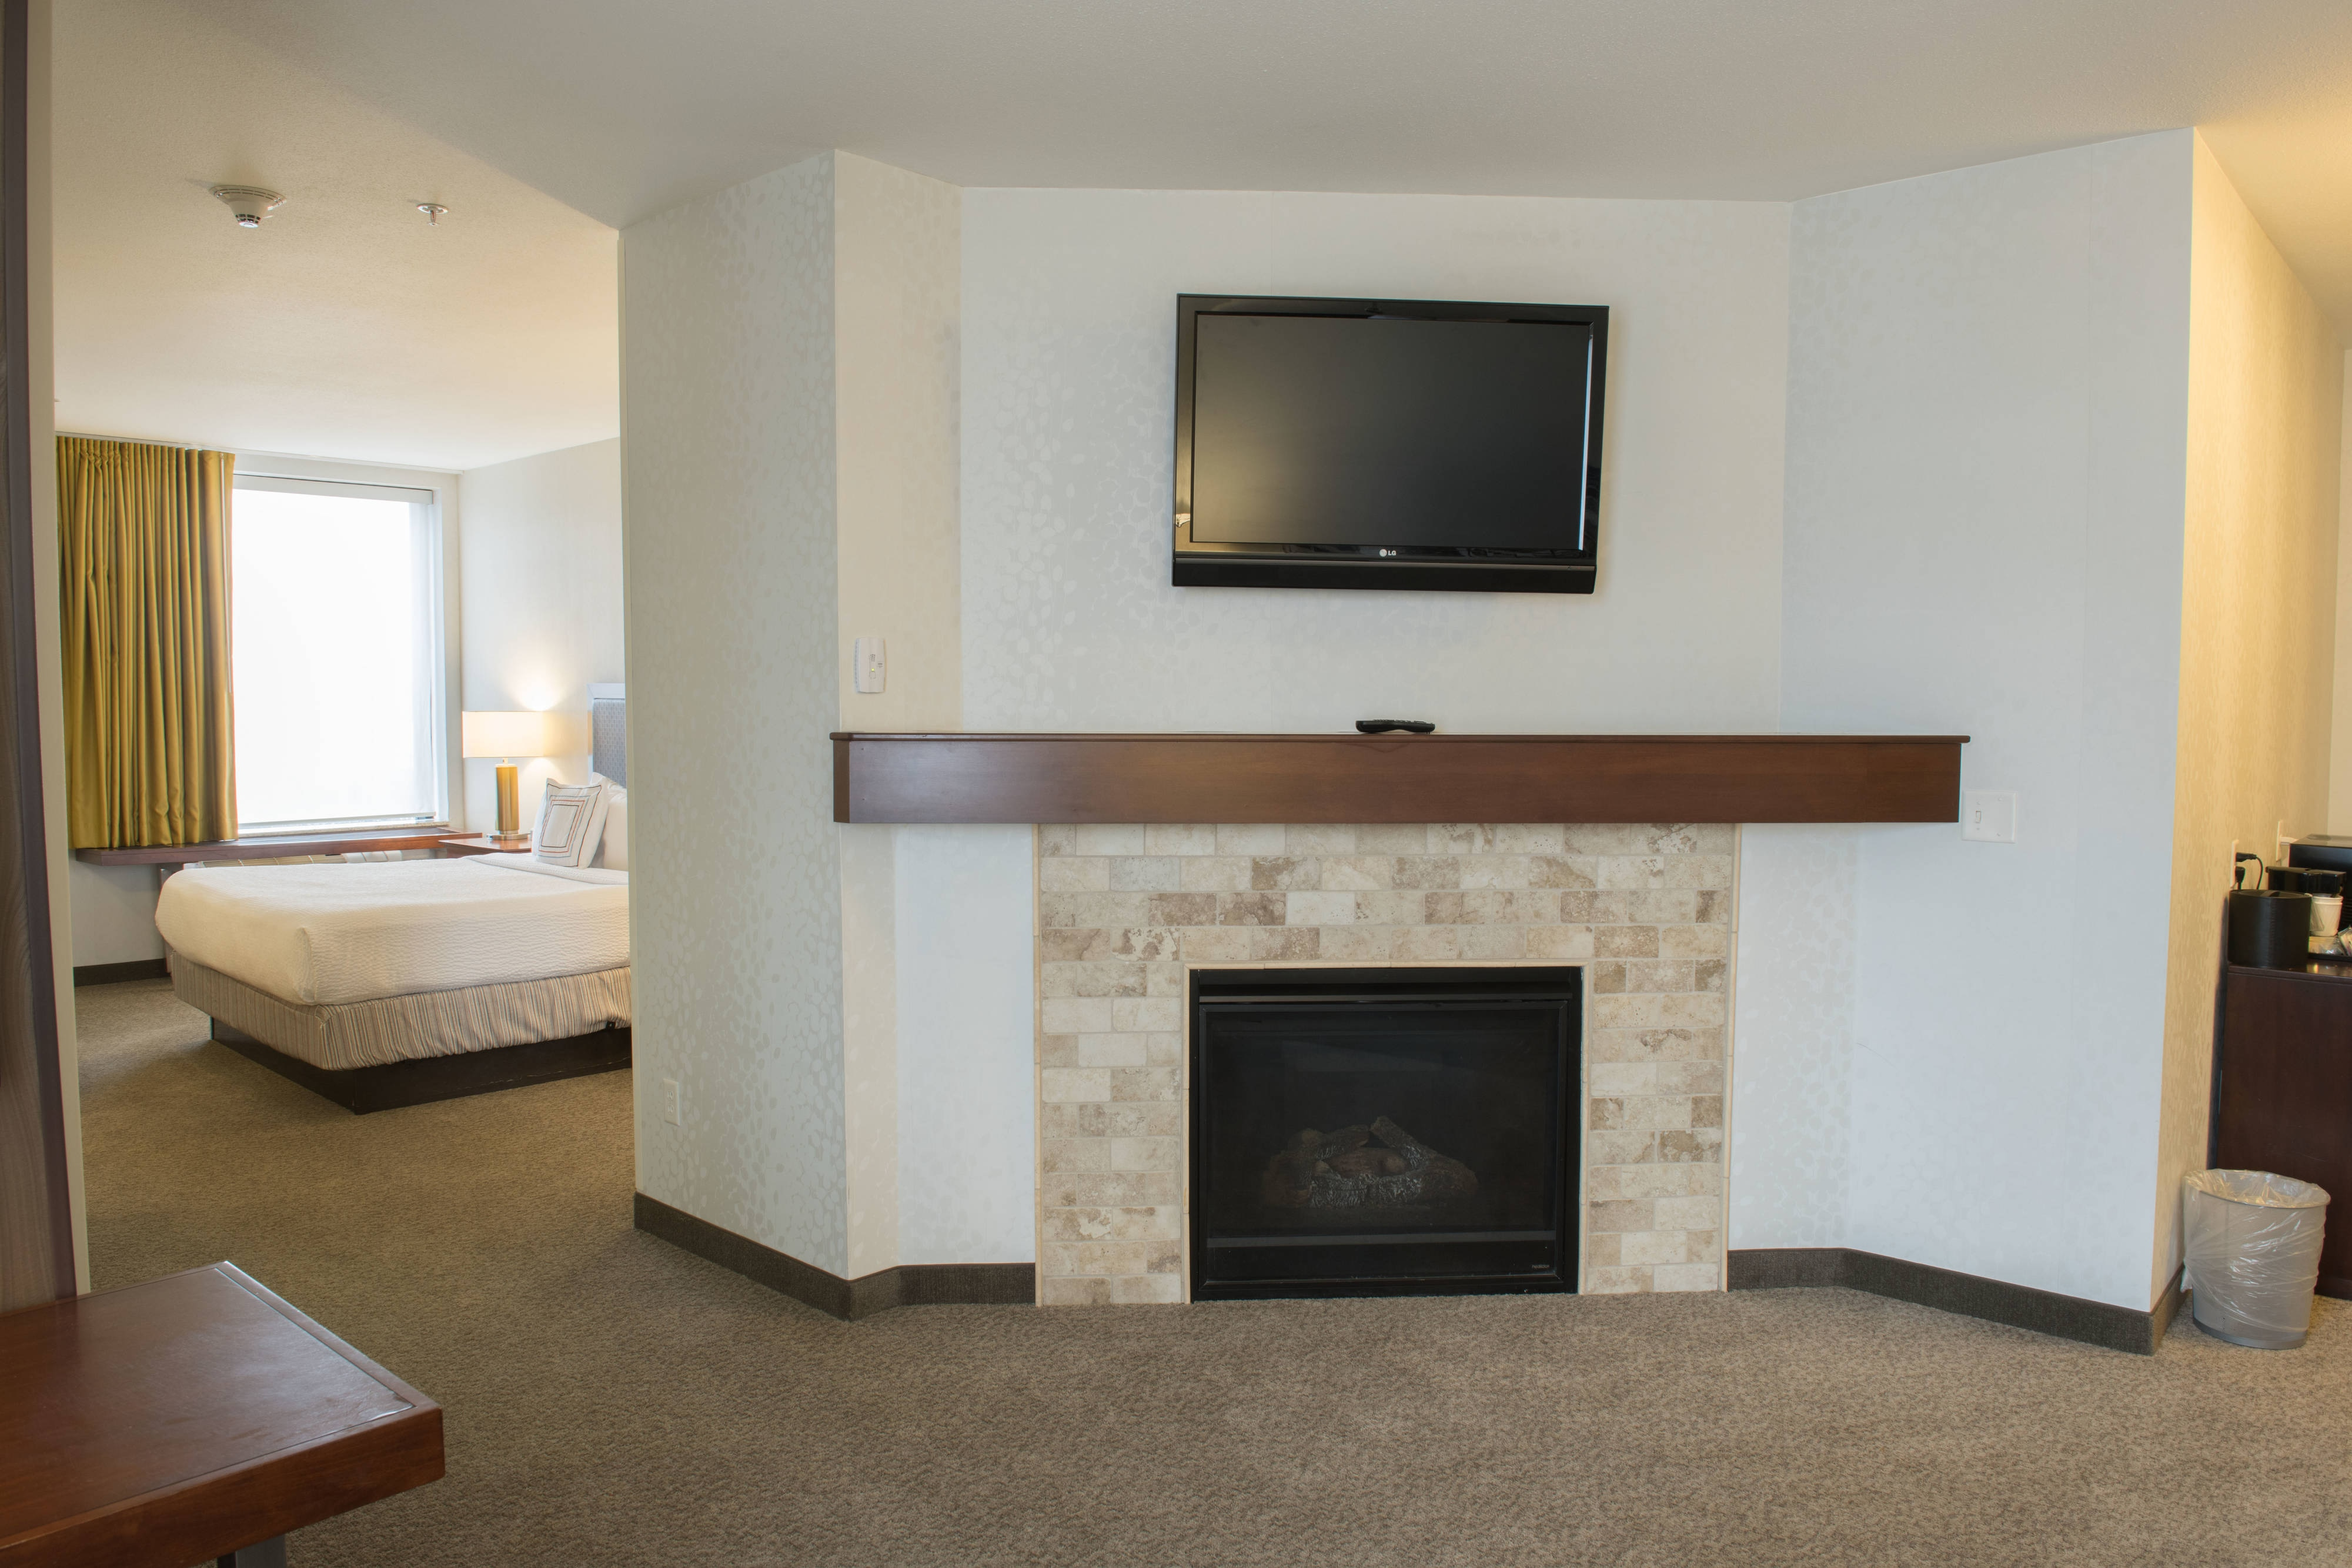 Whirlpool Suite - Fireplace